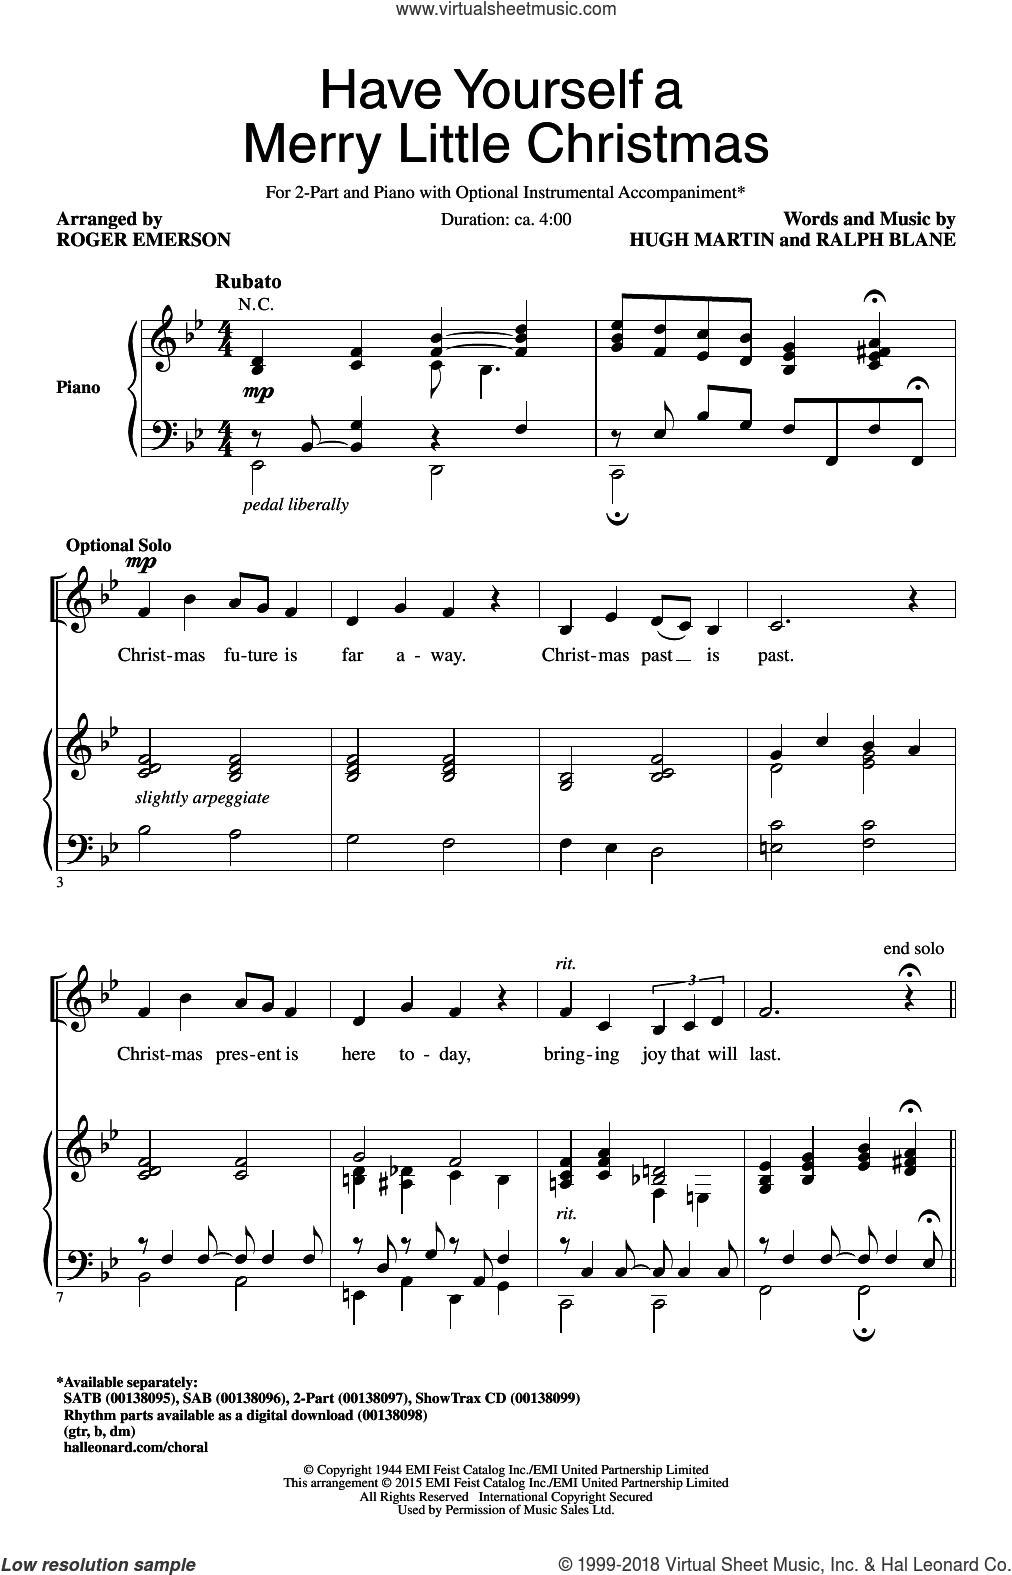 Have Yourself A Merry Little Christmas Chords Emerson Have Yourself A Merry Little Christmas Sheet Music For Choir 2 Part